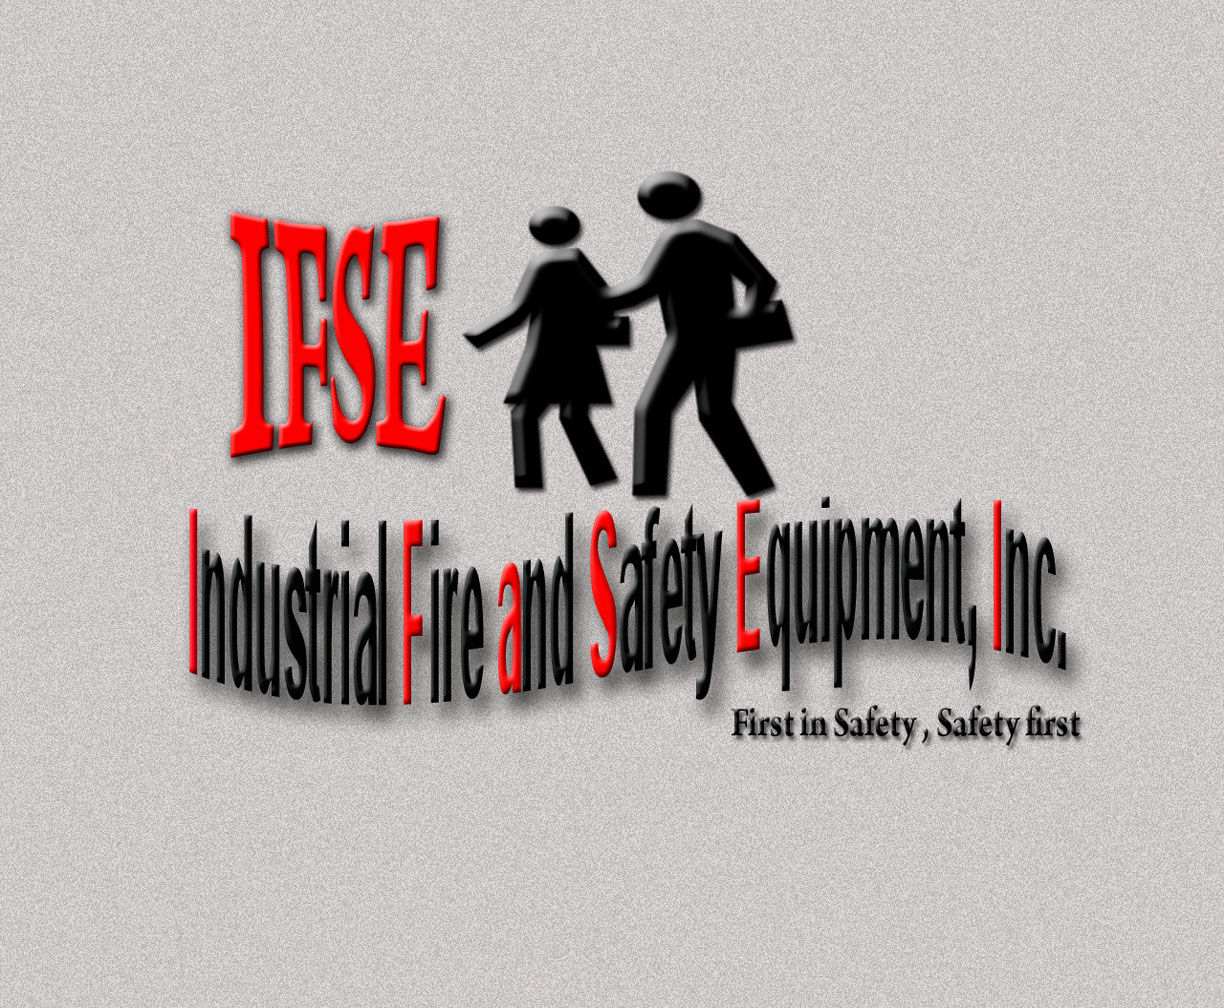 Logo Design by james007 - Entry No. 442 in the Logo Design Contest New Logo Design for Industrial Fire and Safety Equipment, Inc..